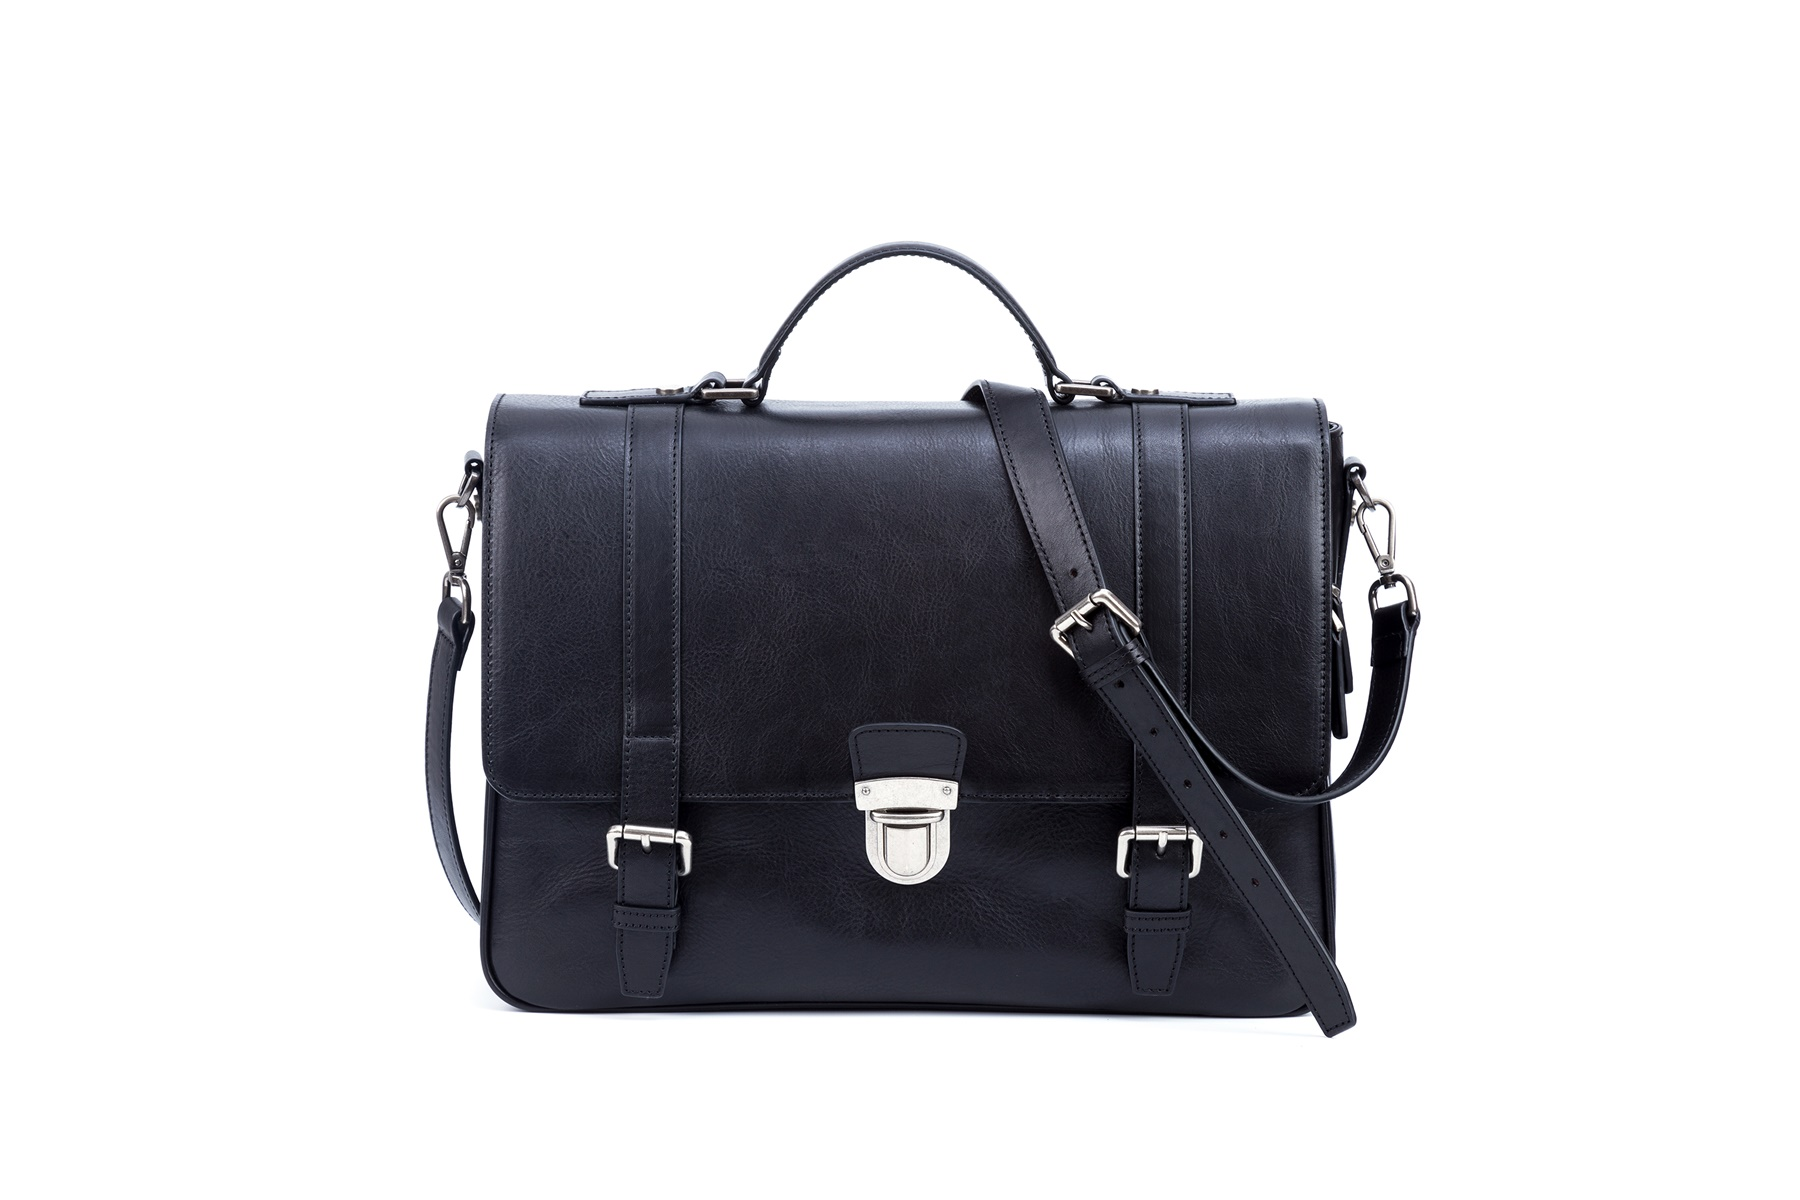 GF bags-Find Business Bag Mens Fashion Messenger Bag From GF Bags-3